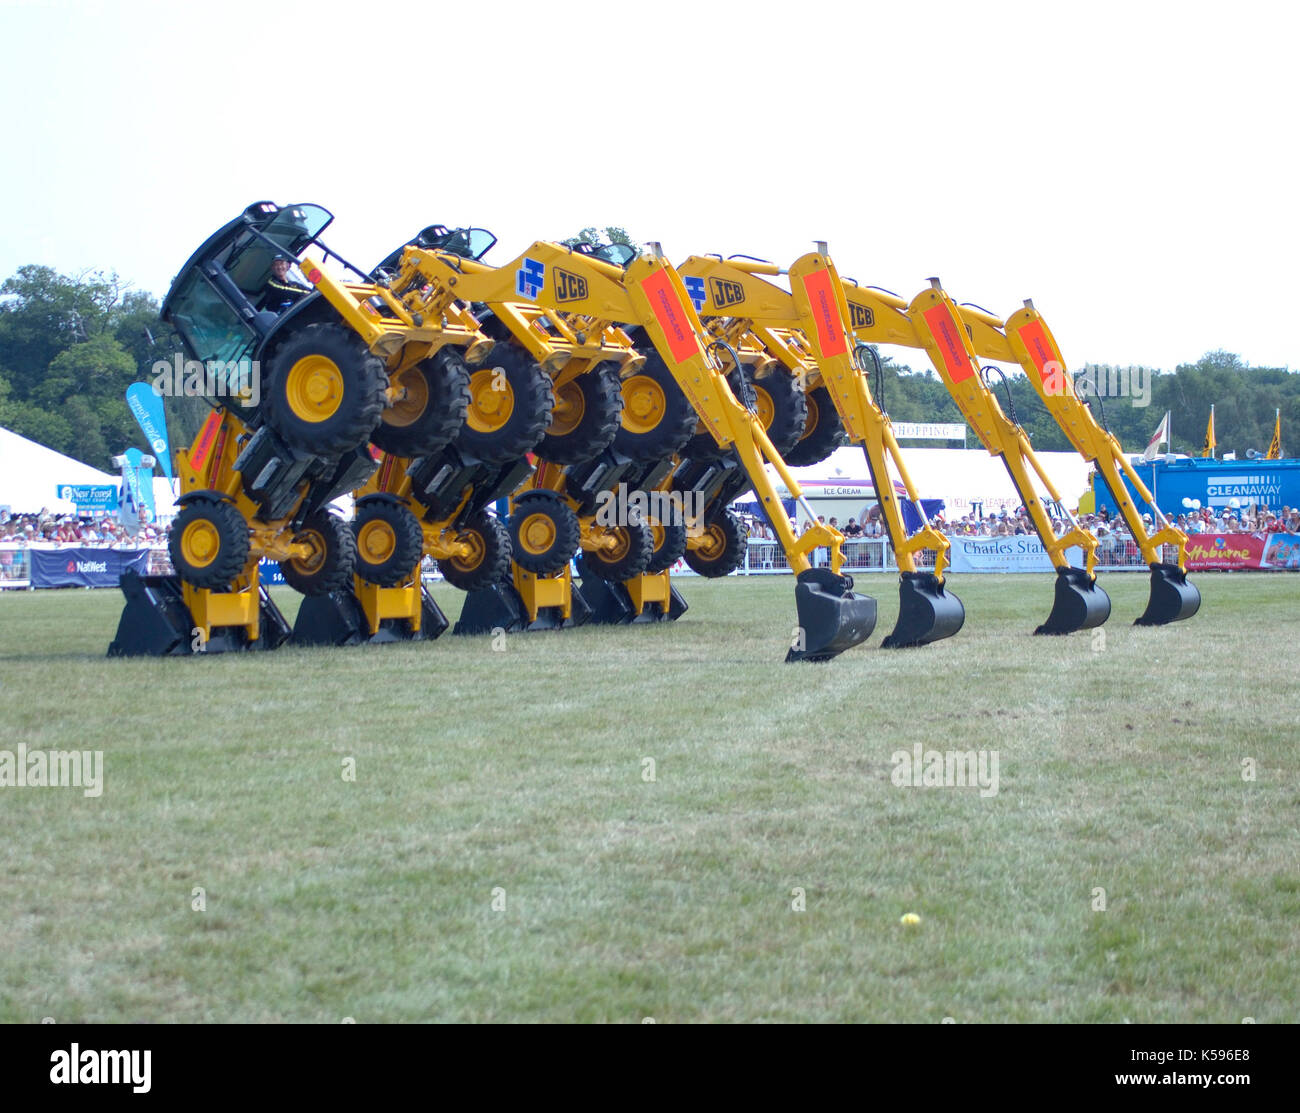 Stunt JCB diggers in formation 'dance' 2006 New Forest Show - Stock Image